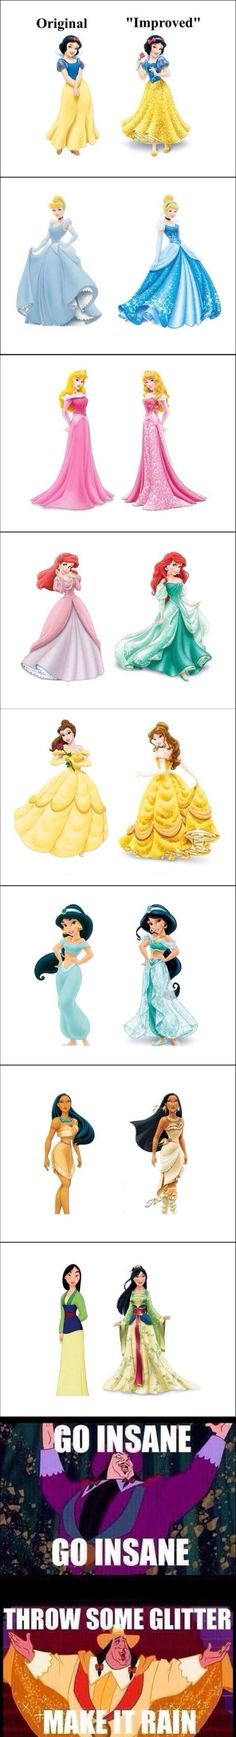 Improved Disney Princesses